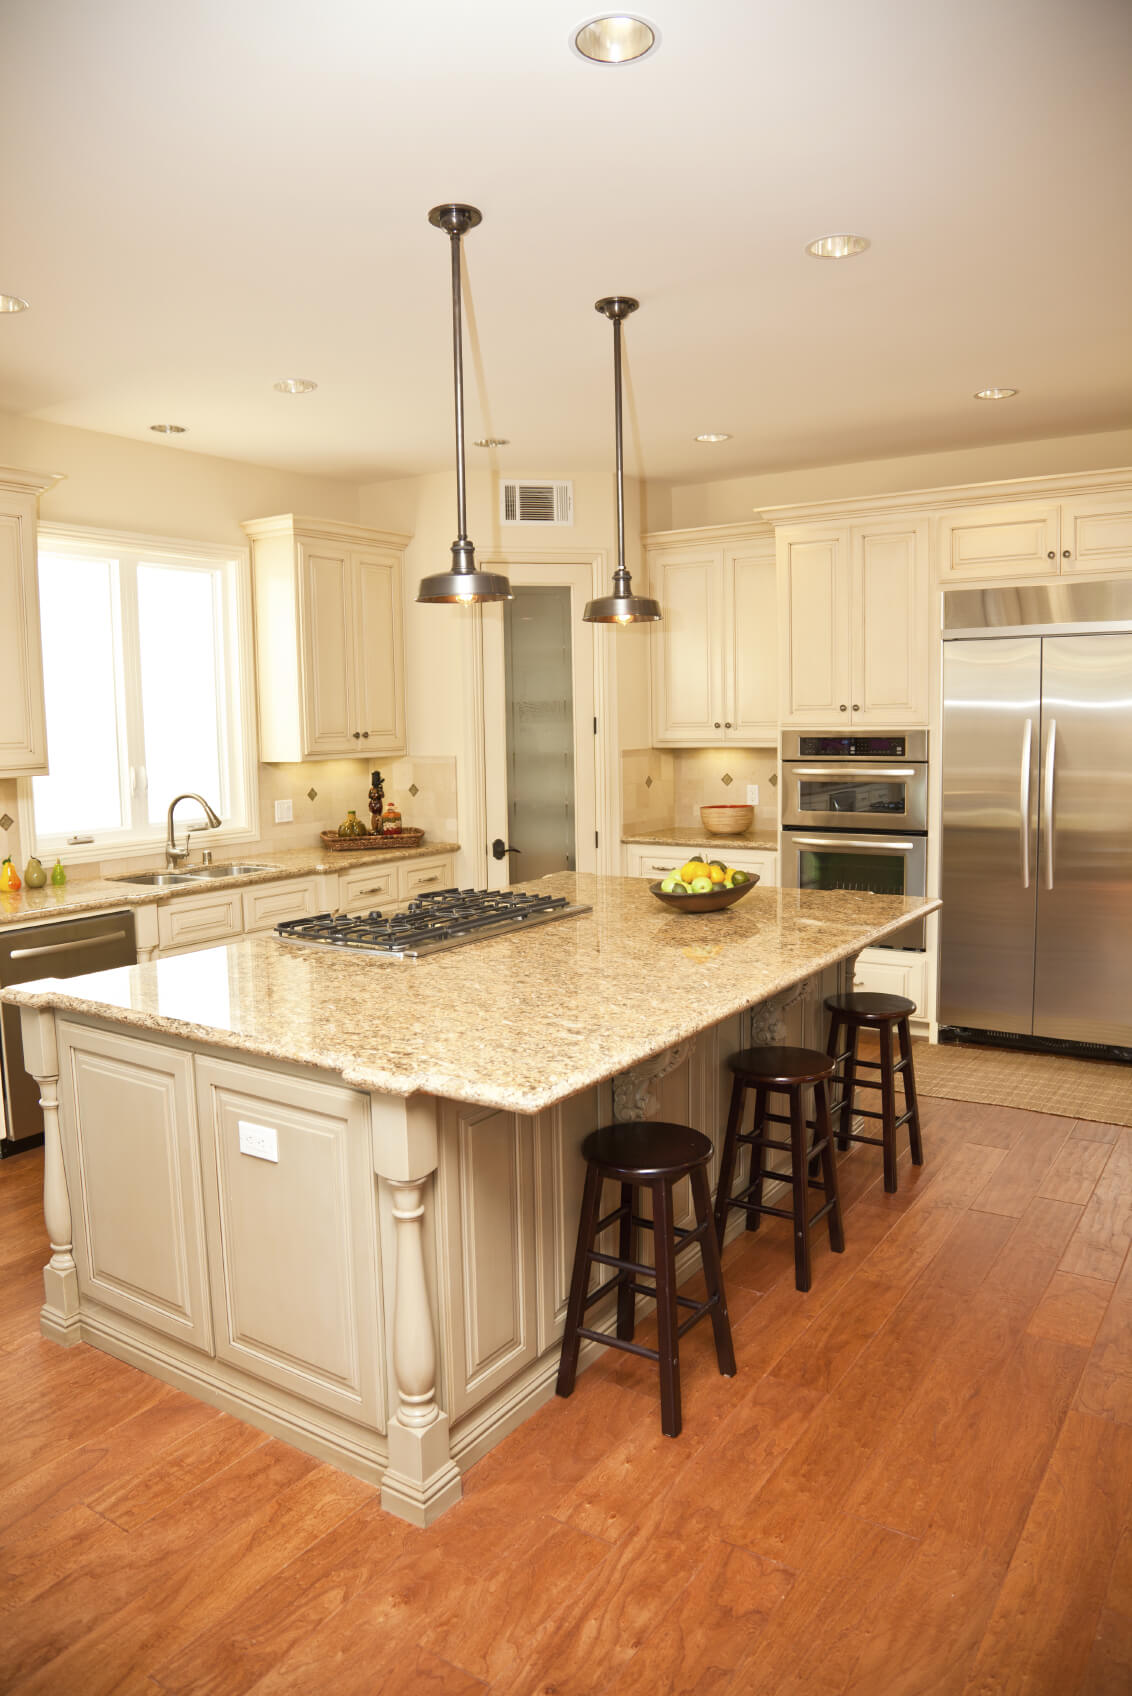 Luxurious Beige Tone Island Features Wide Overhang For Dining, With Built  In Range. Part 52